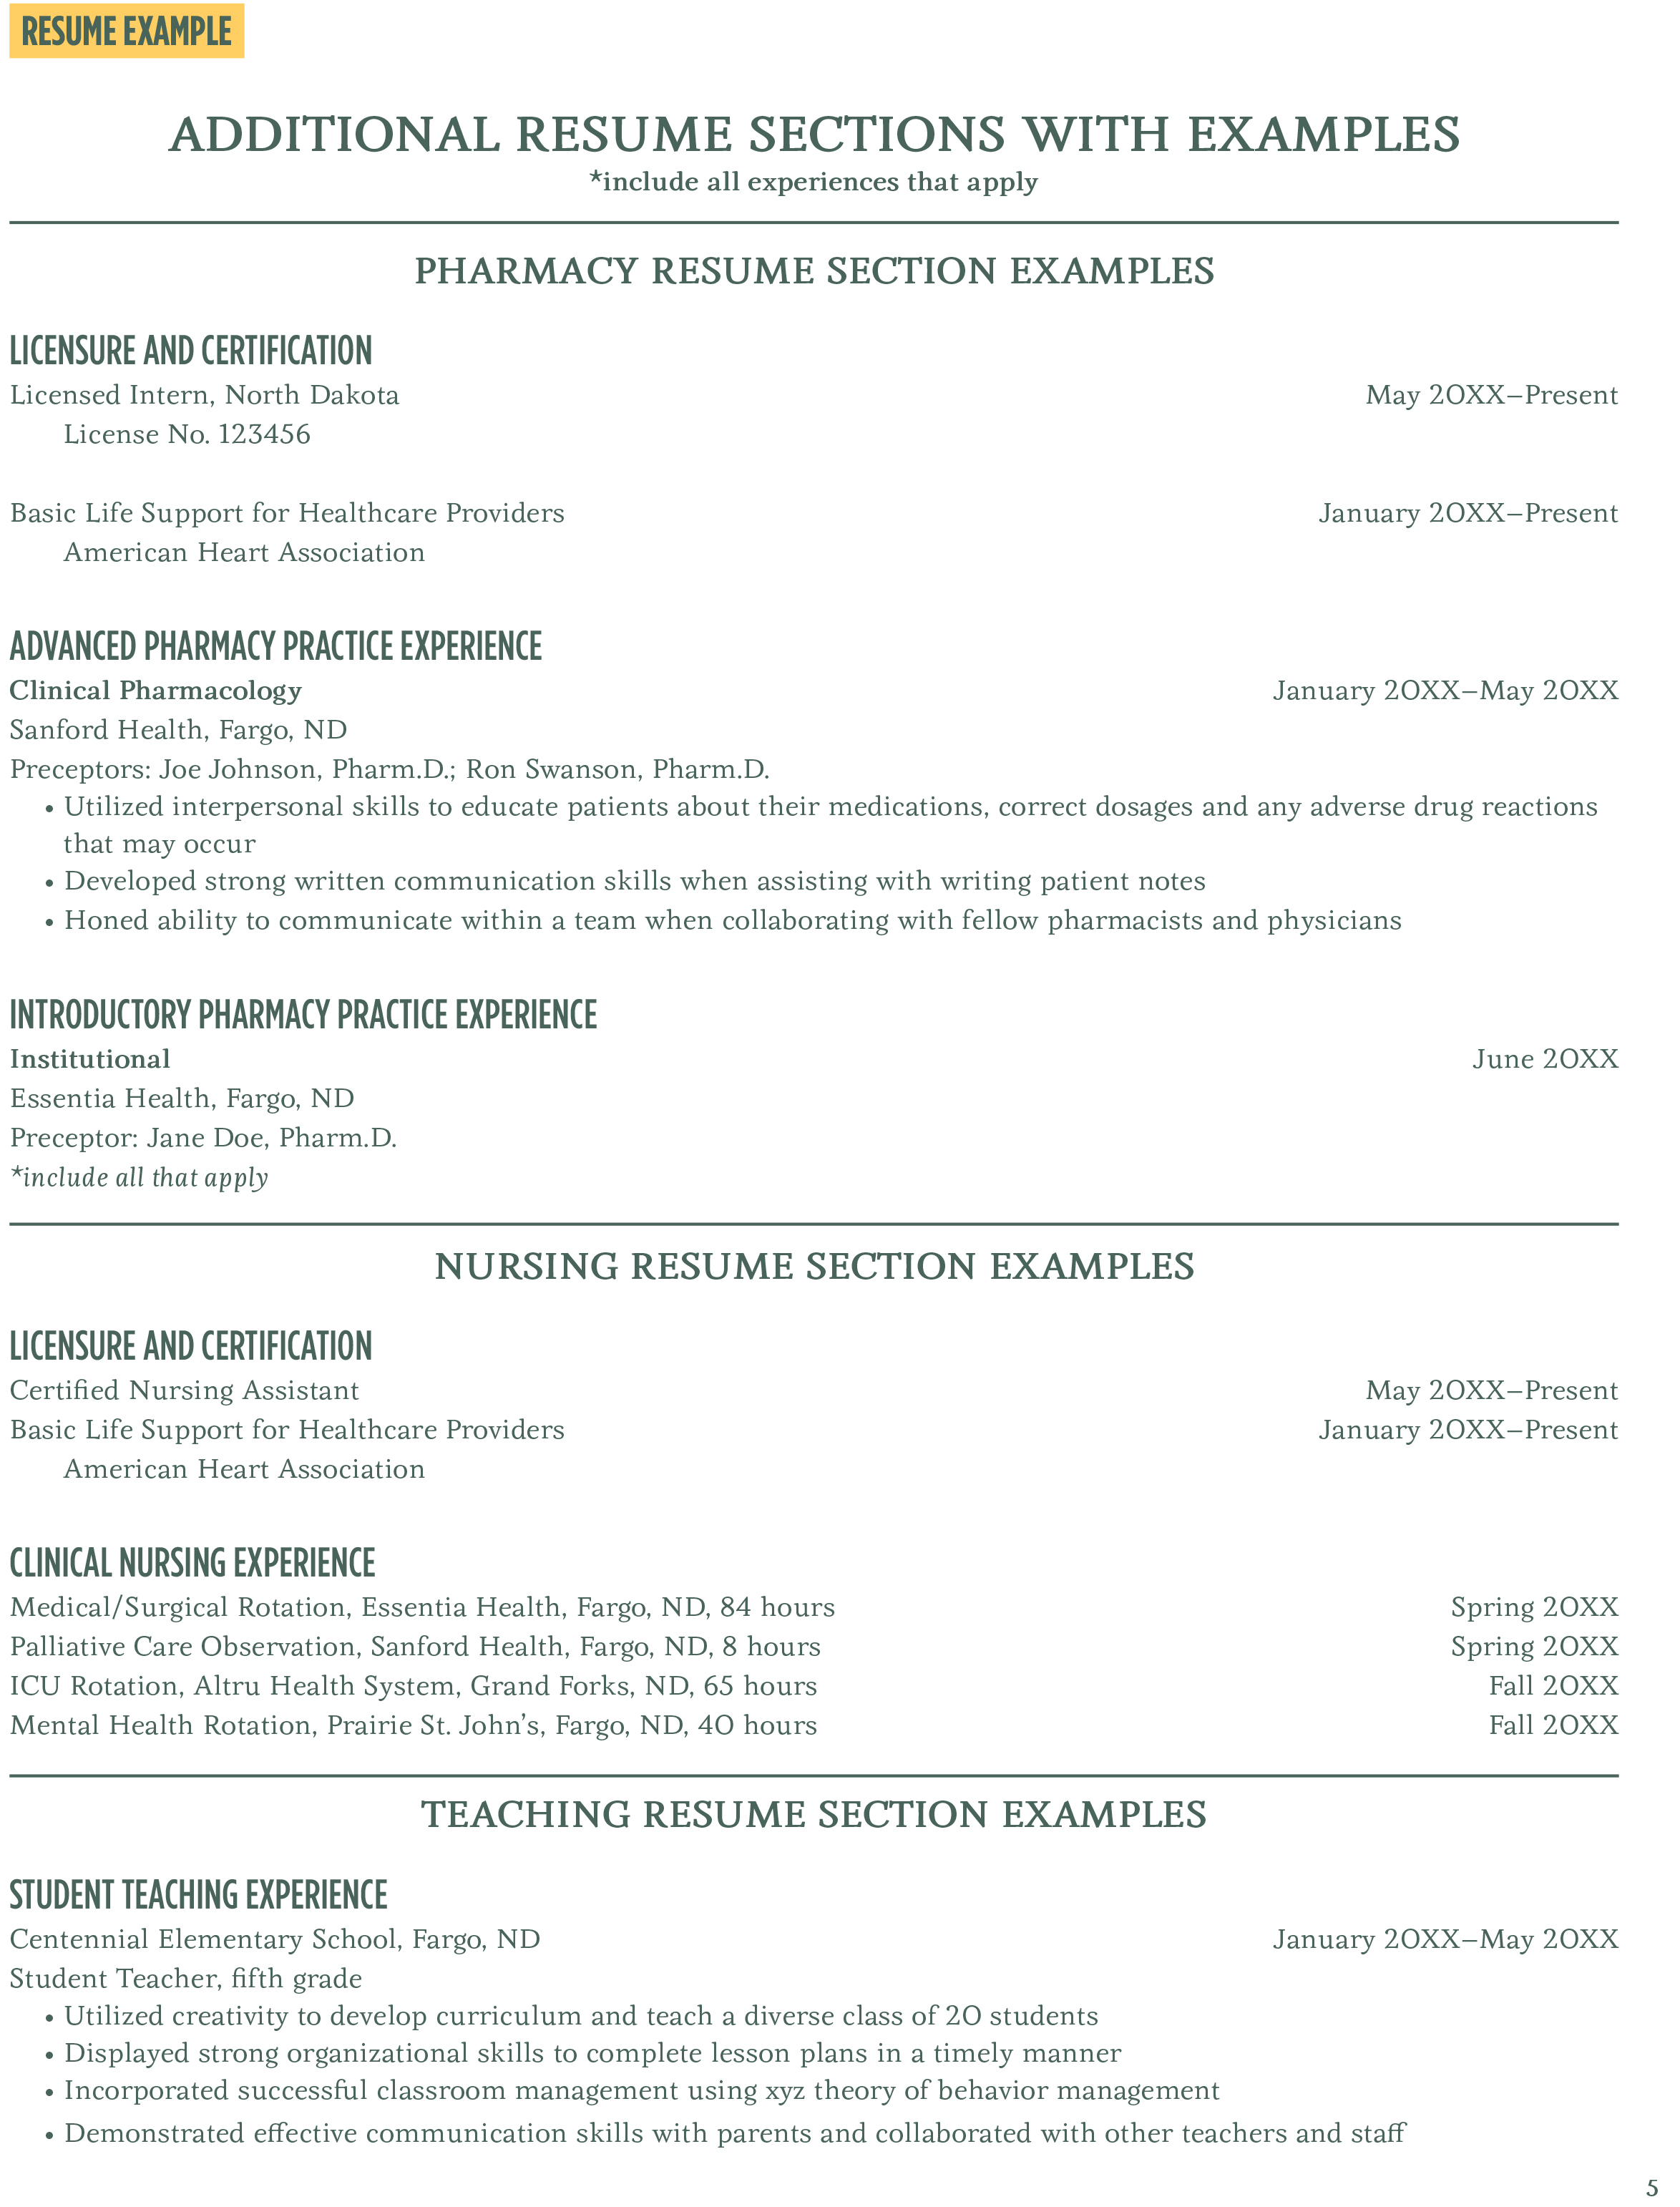 Additional Resume Sections With Examples U2013 Career Center U2013 North Dakota  State University  Communication On Resume